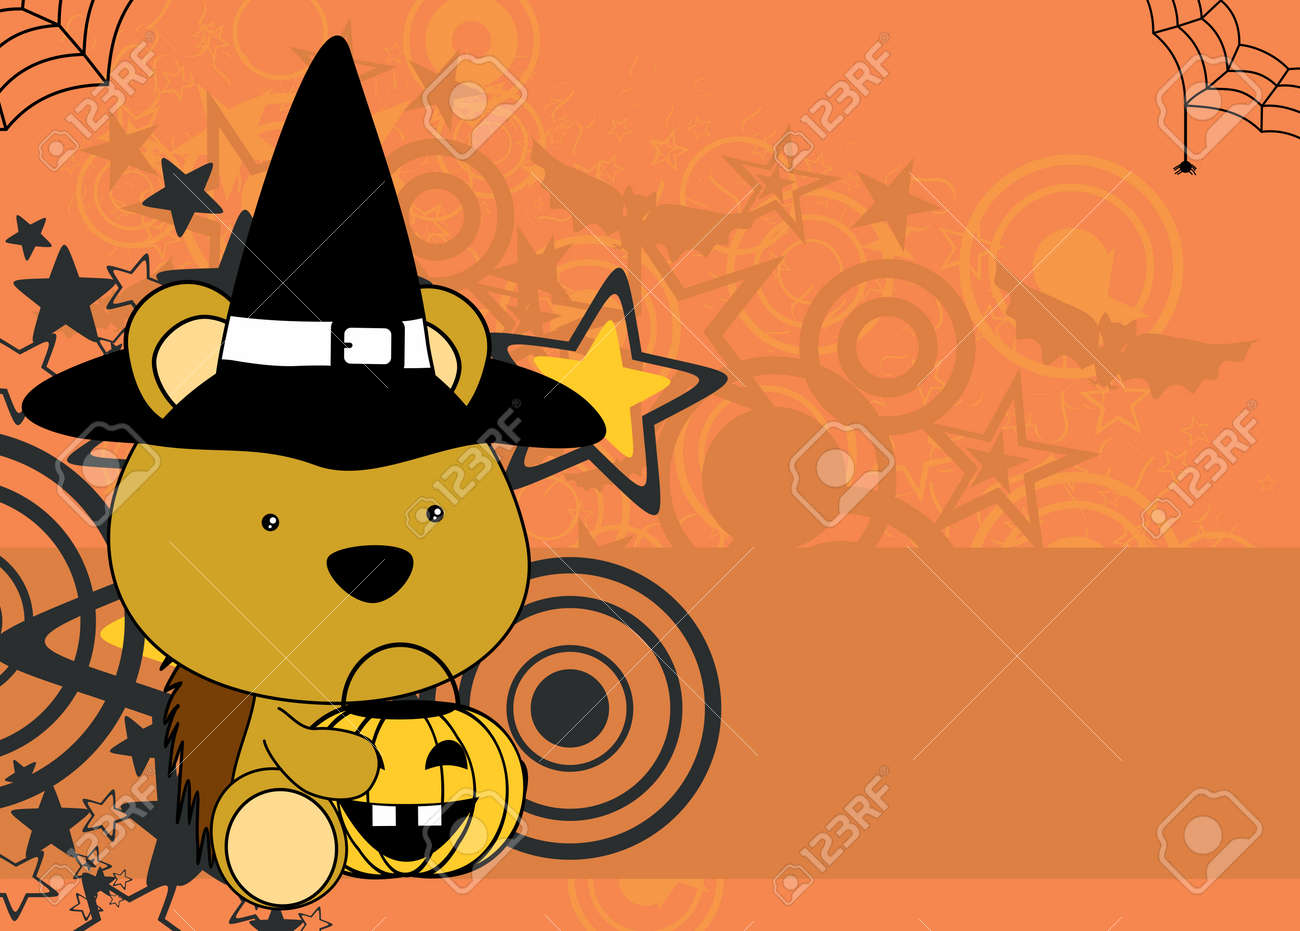 Baby porcupine in Halloween costume icon. Stock Vector - 85830456  sc 1 st  123RF.com & Baby Porcupine In Halloween Costume Icon. Royalty Free Cliparts ...